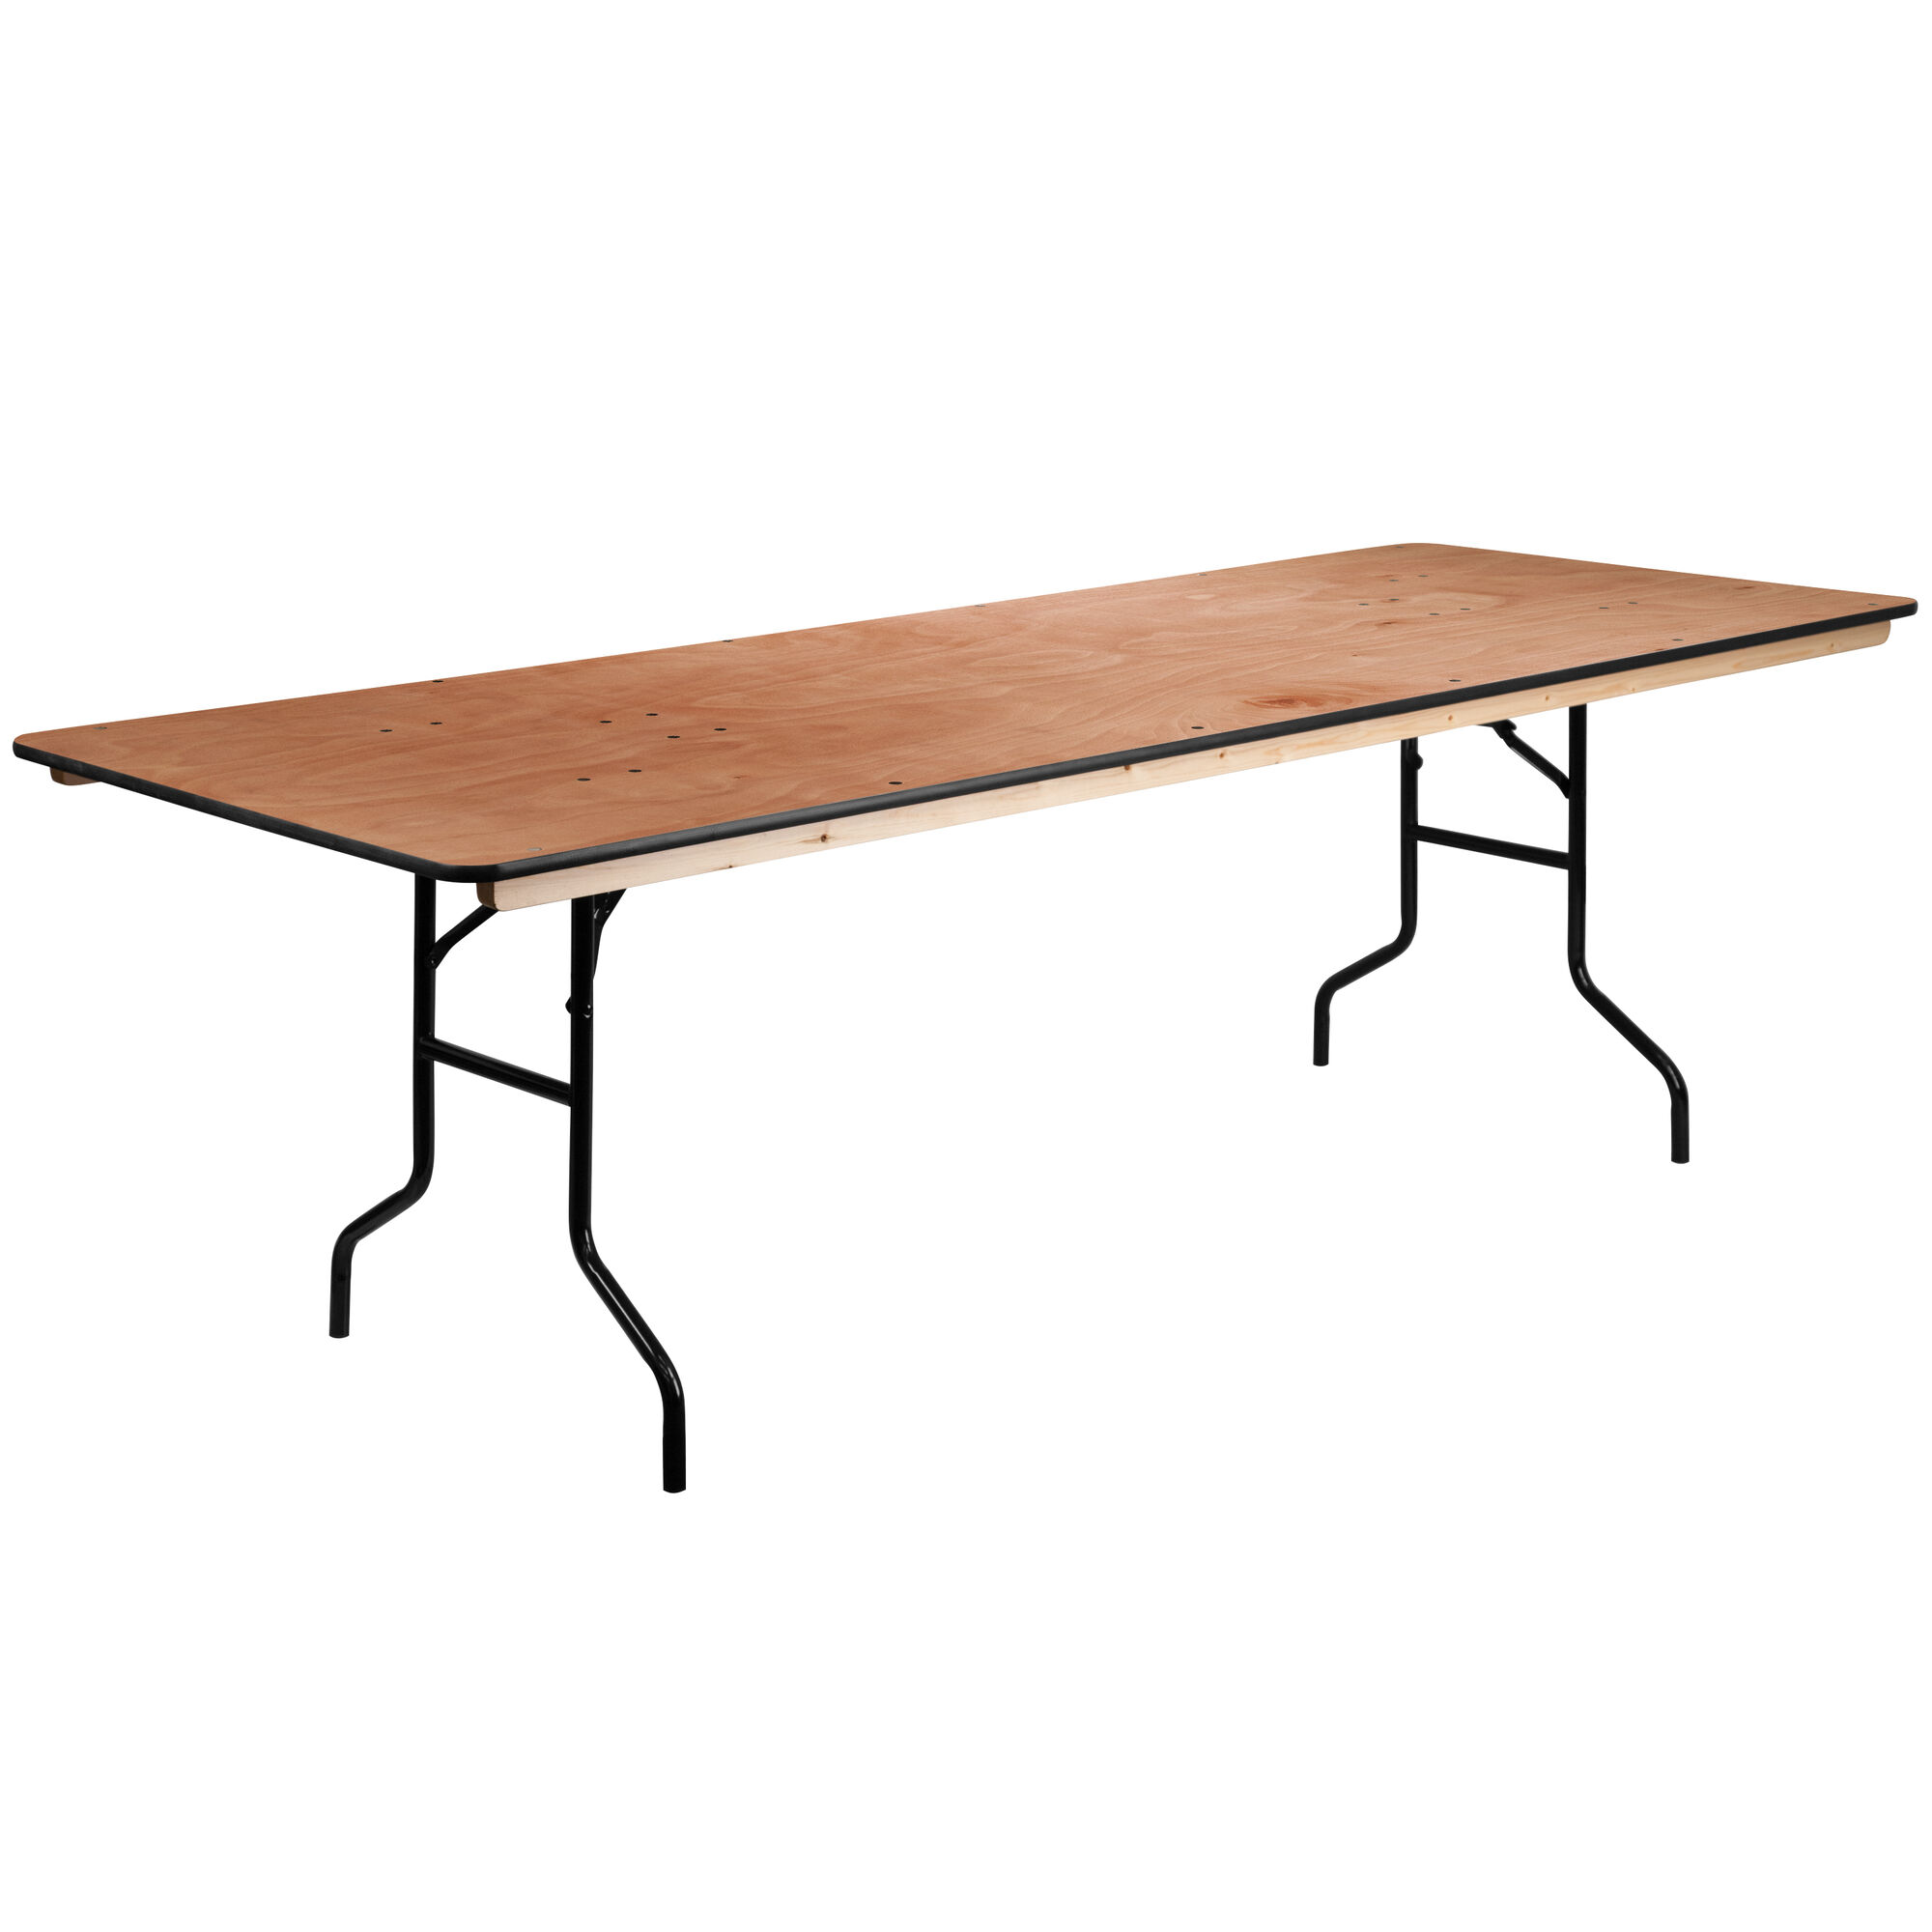 8 Foot Rectangular Wood Folding Banquet Table With Clear Coated Finished Top